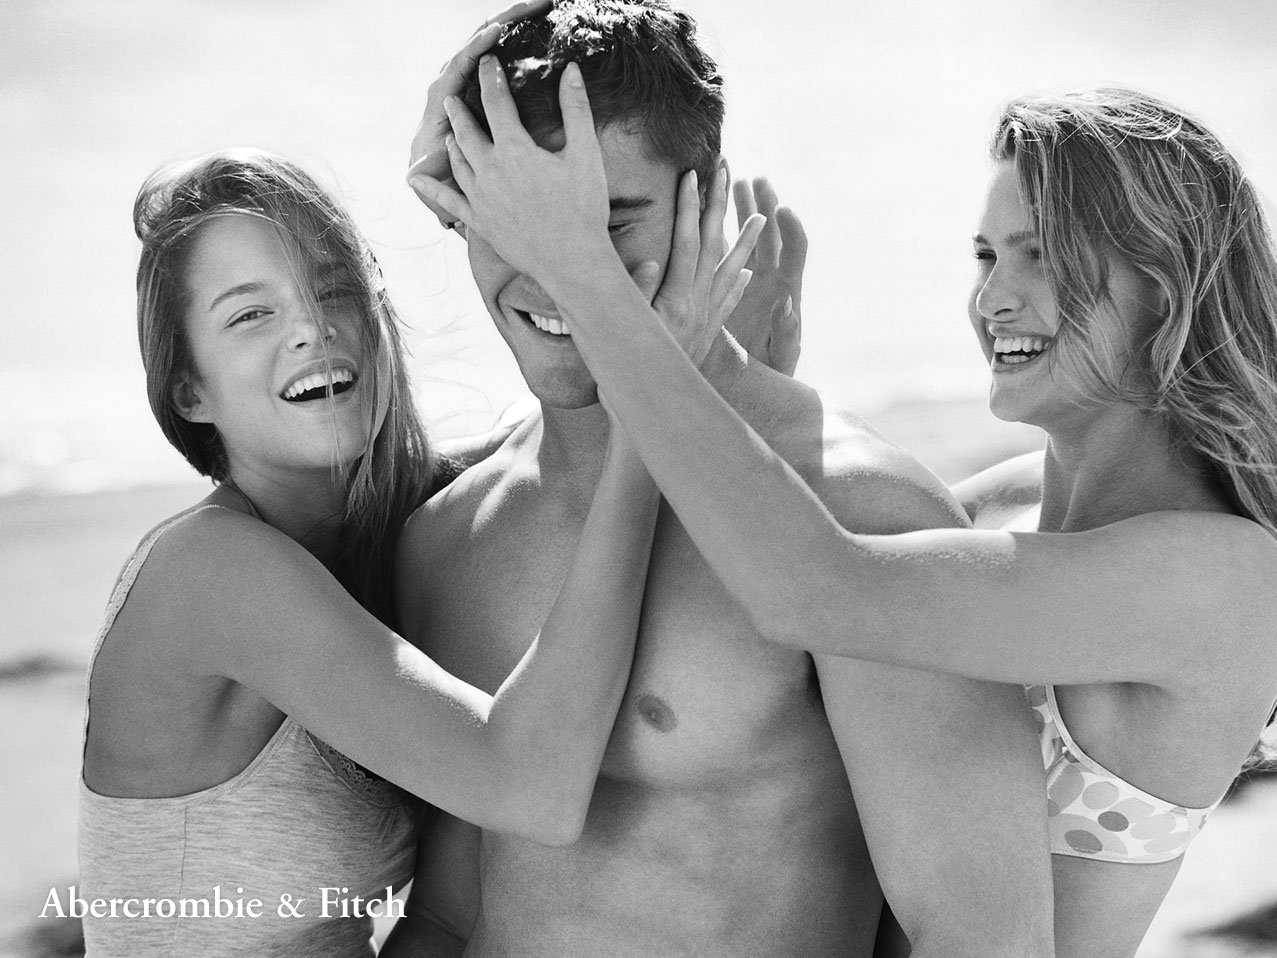 abercrombie-and-fitch-refuses-to-make-clothes-for-large-women